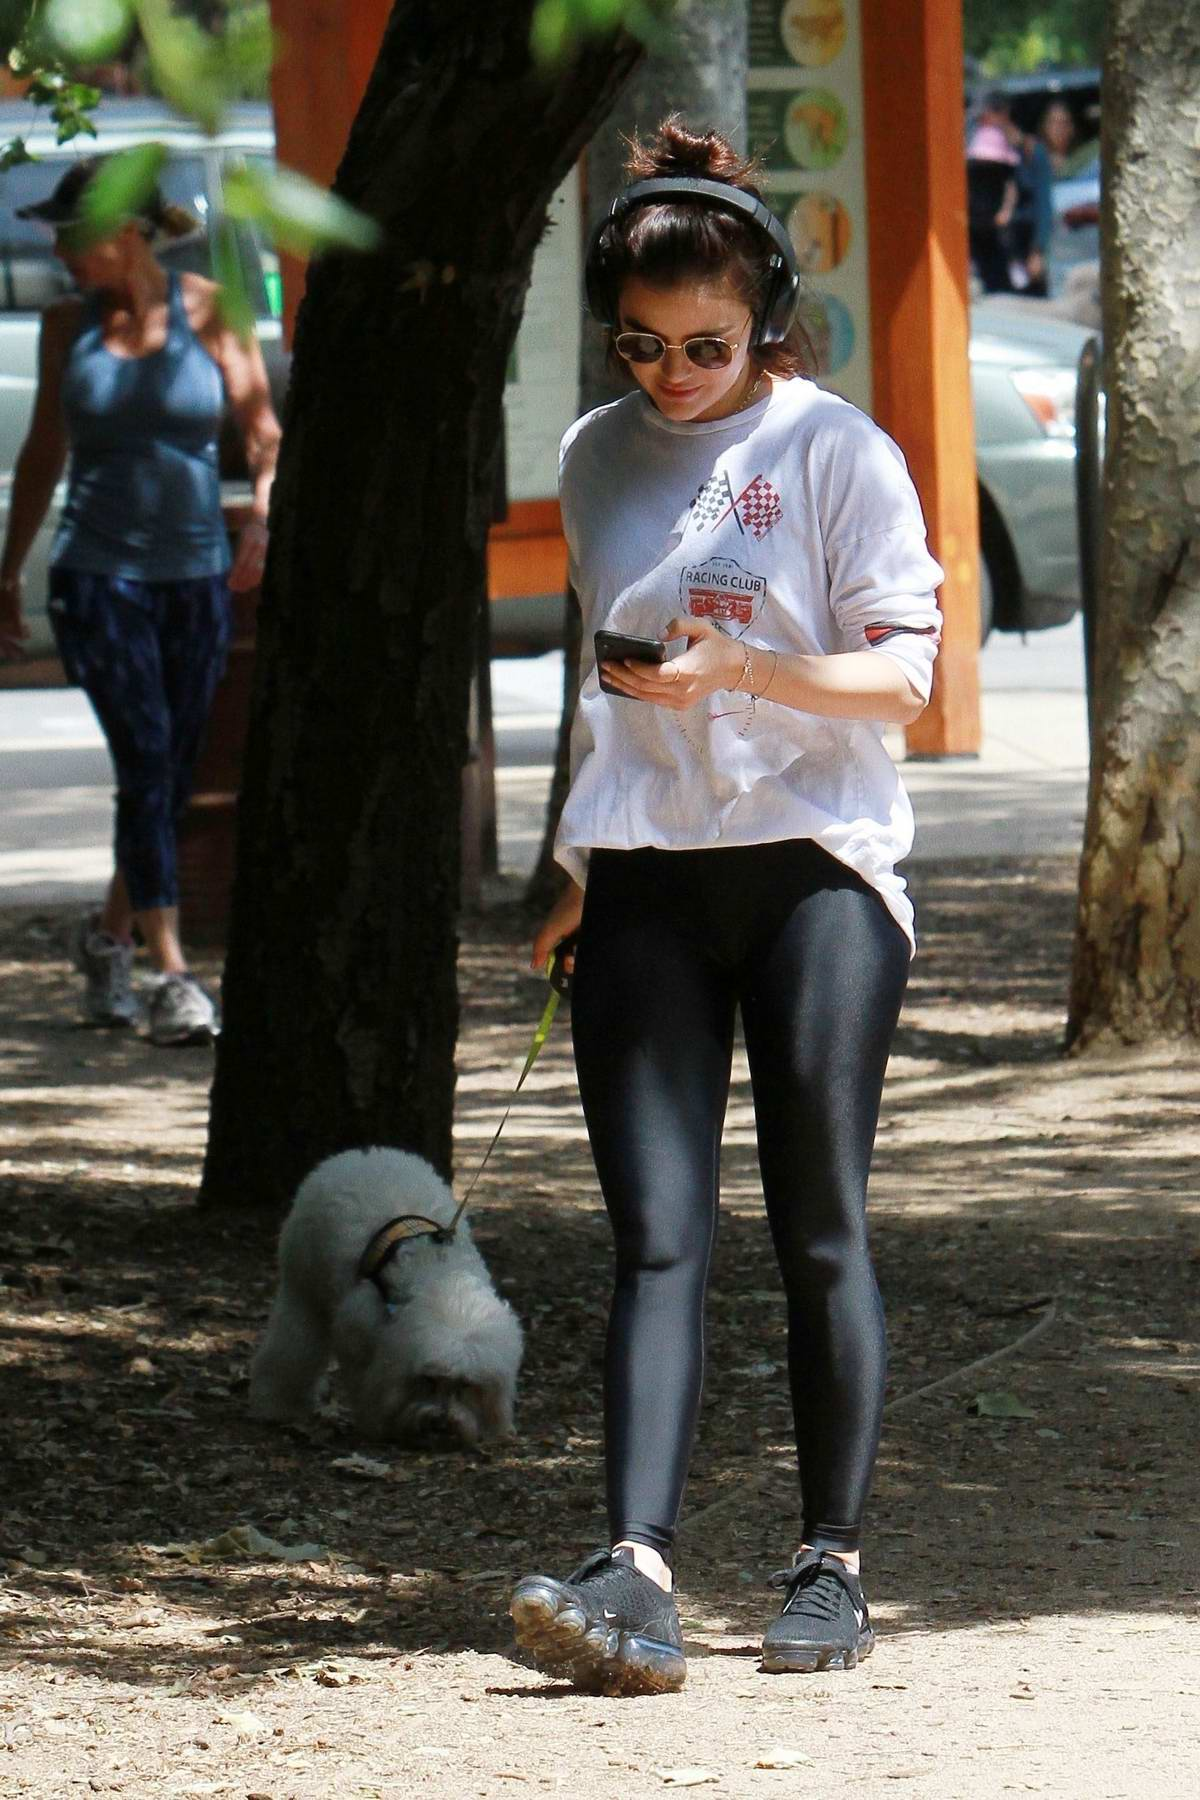 Lucy Hale spotted in white racing sweatshirt and black leggings as she takes her dog for a walk in Los Angeles